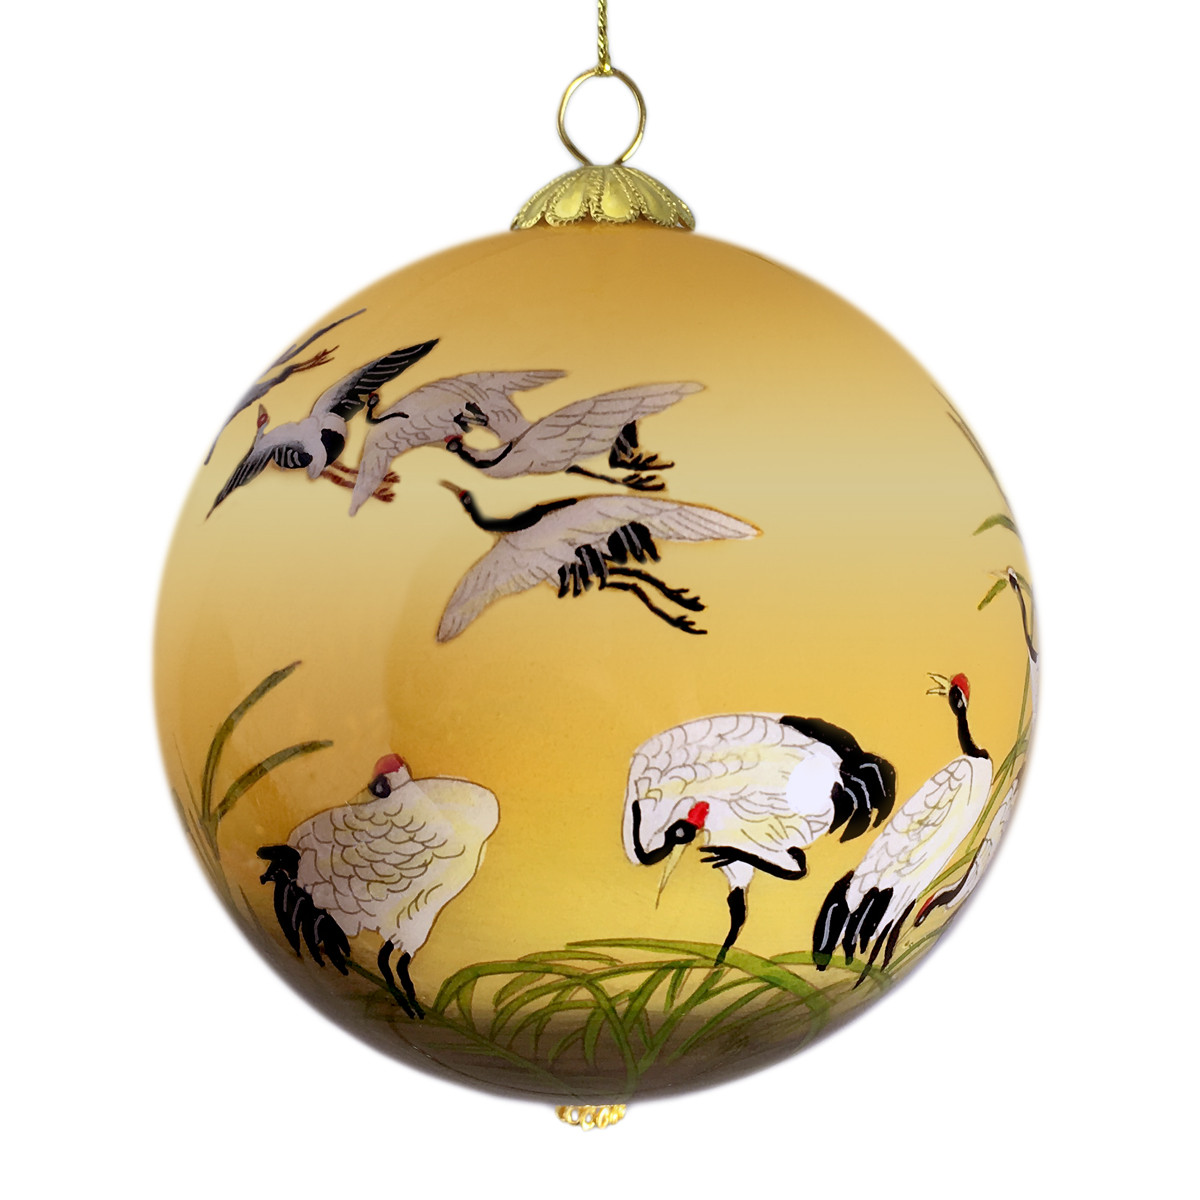 DIA Collection Ornament 3rd Annual Limited Edition Reeds and Cranes ...